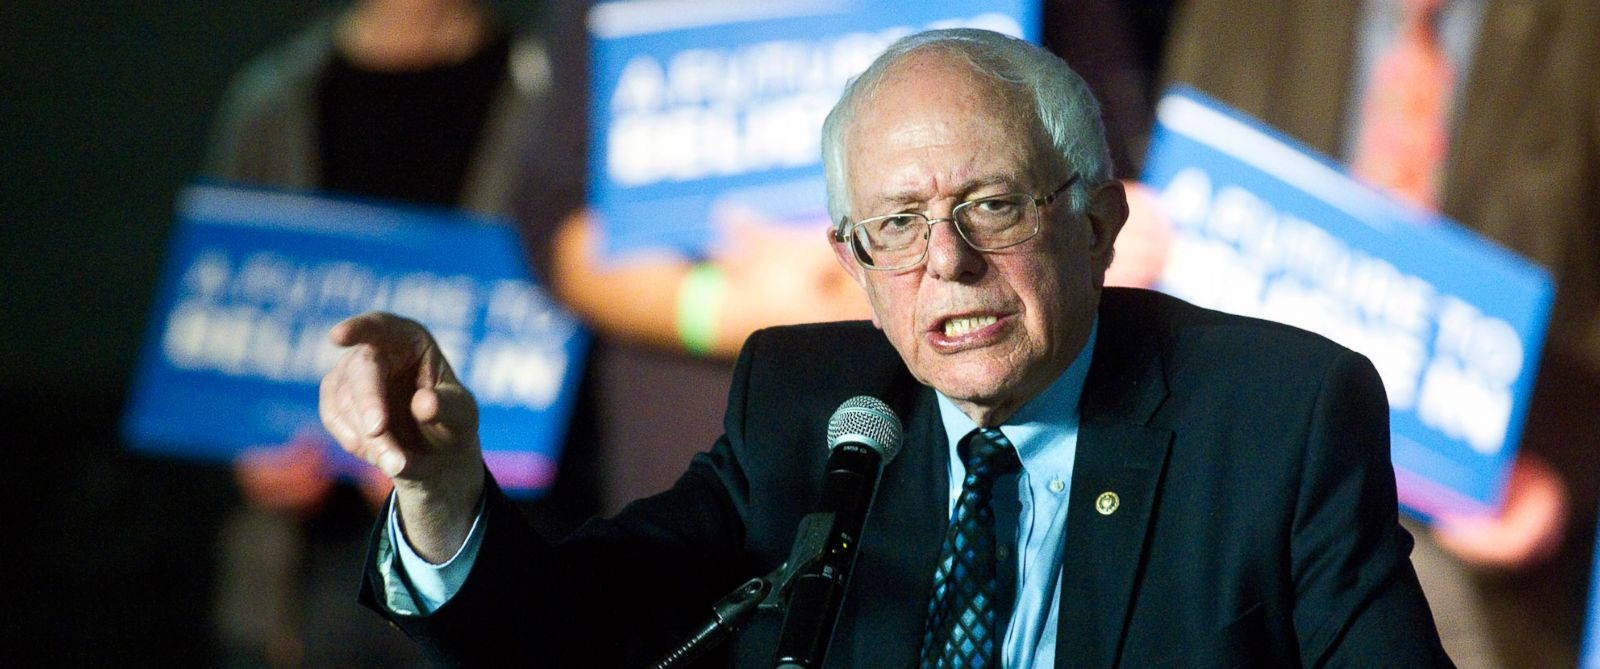 PHOTO: Presidential candidate Bernie Sanders speaks to supporters, March 4, 2016 at the Streeters Center in Traverse City, Mich.